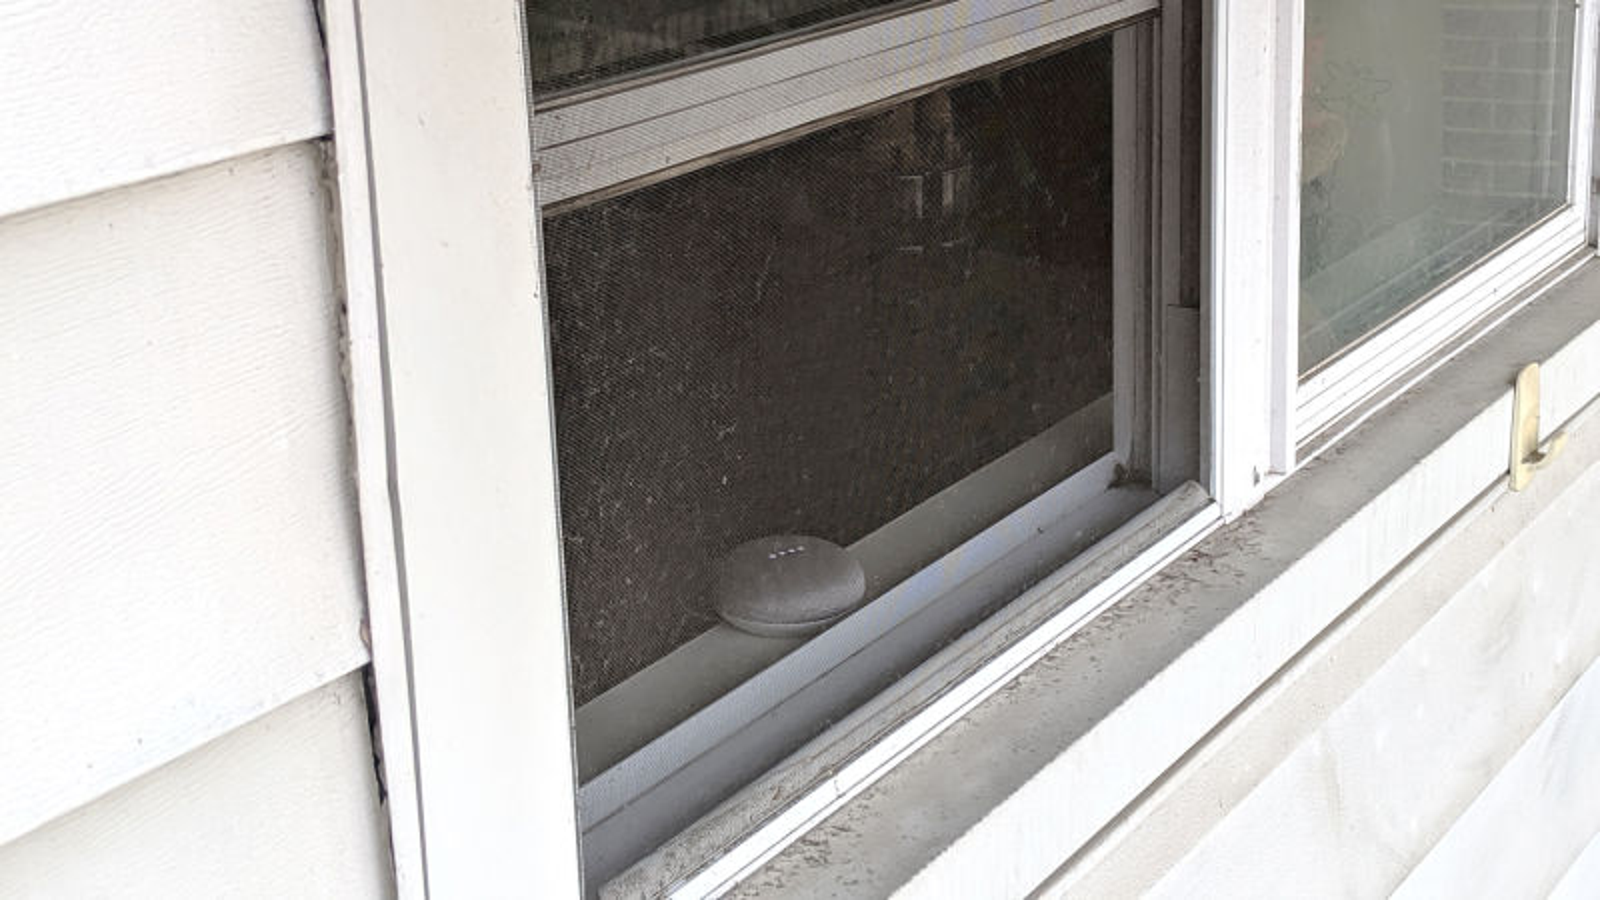 Neglected Google Home Sits By Window Barking At Passersby